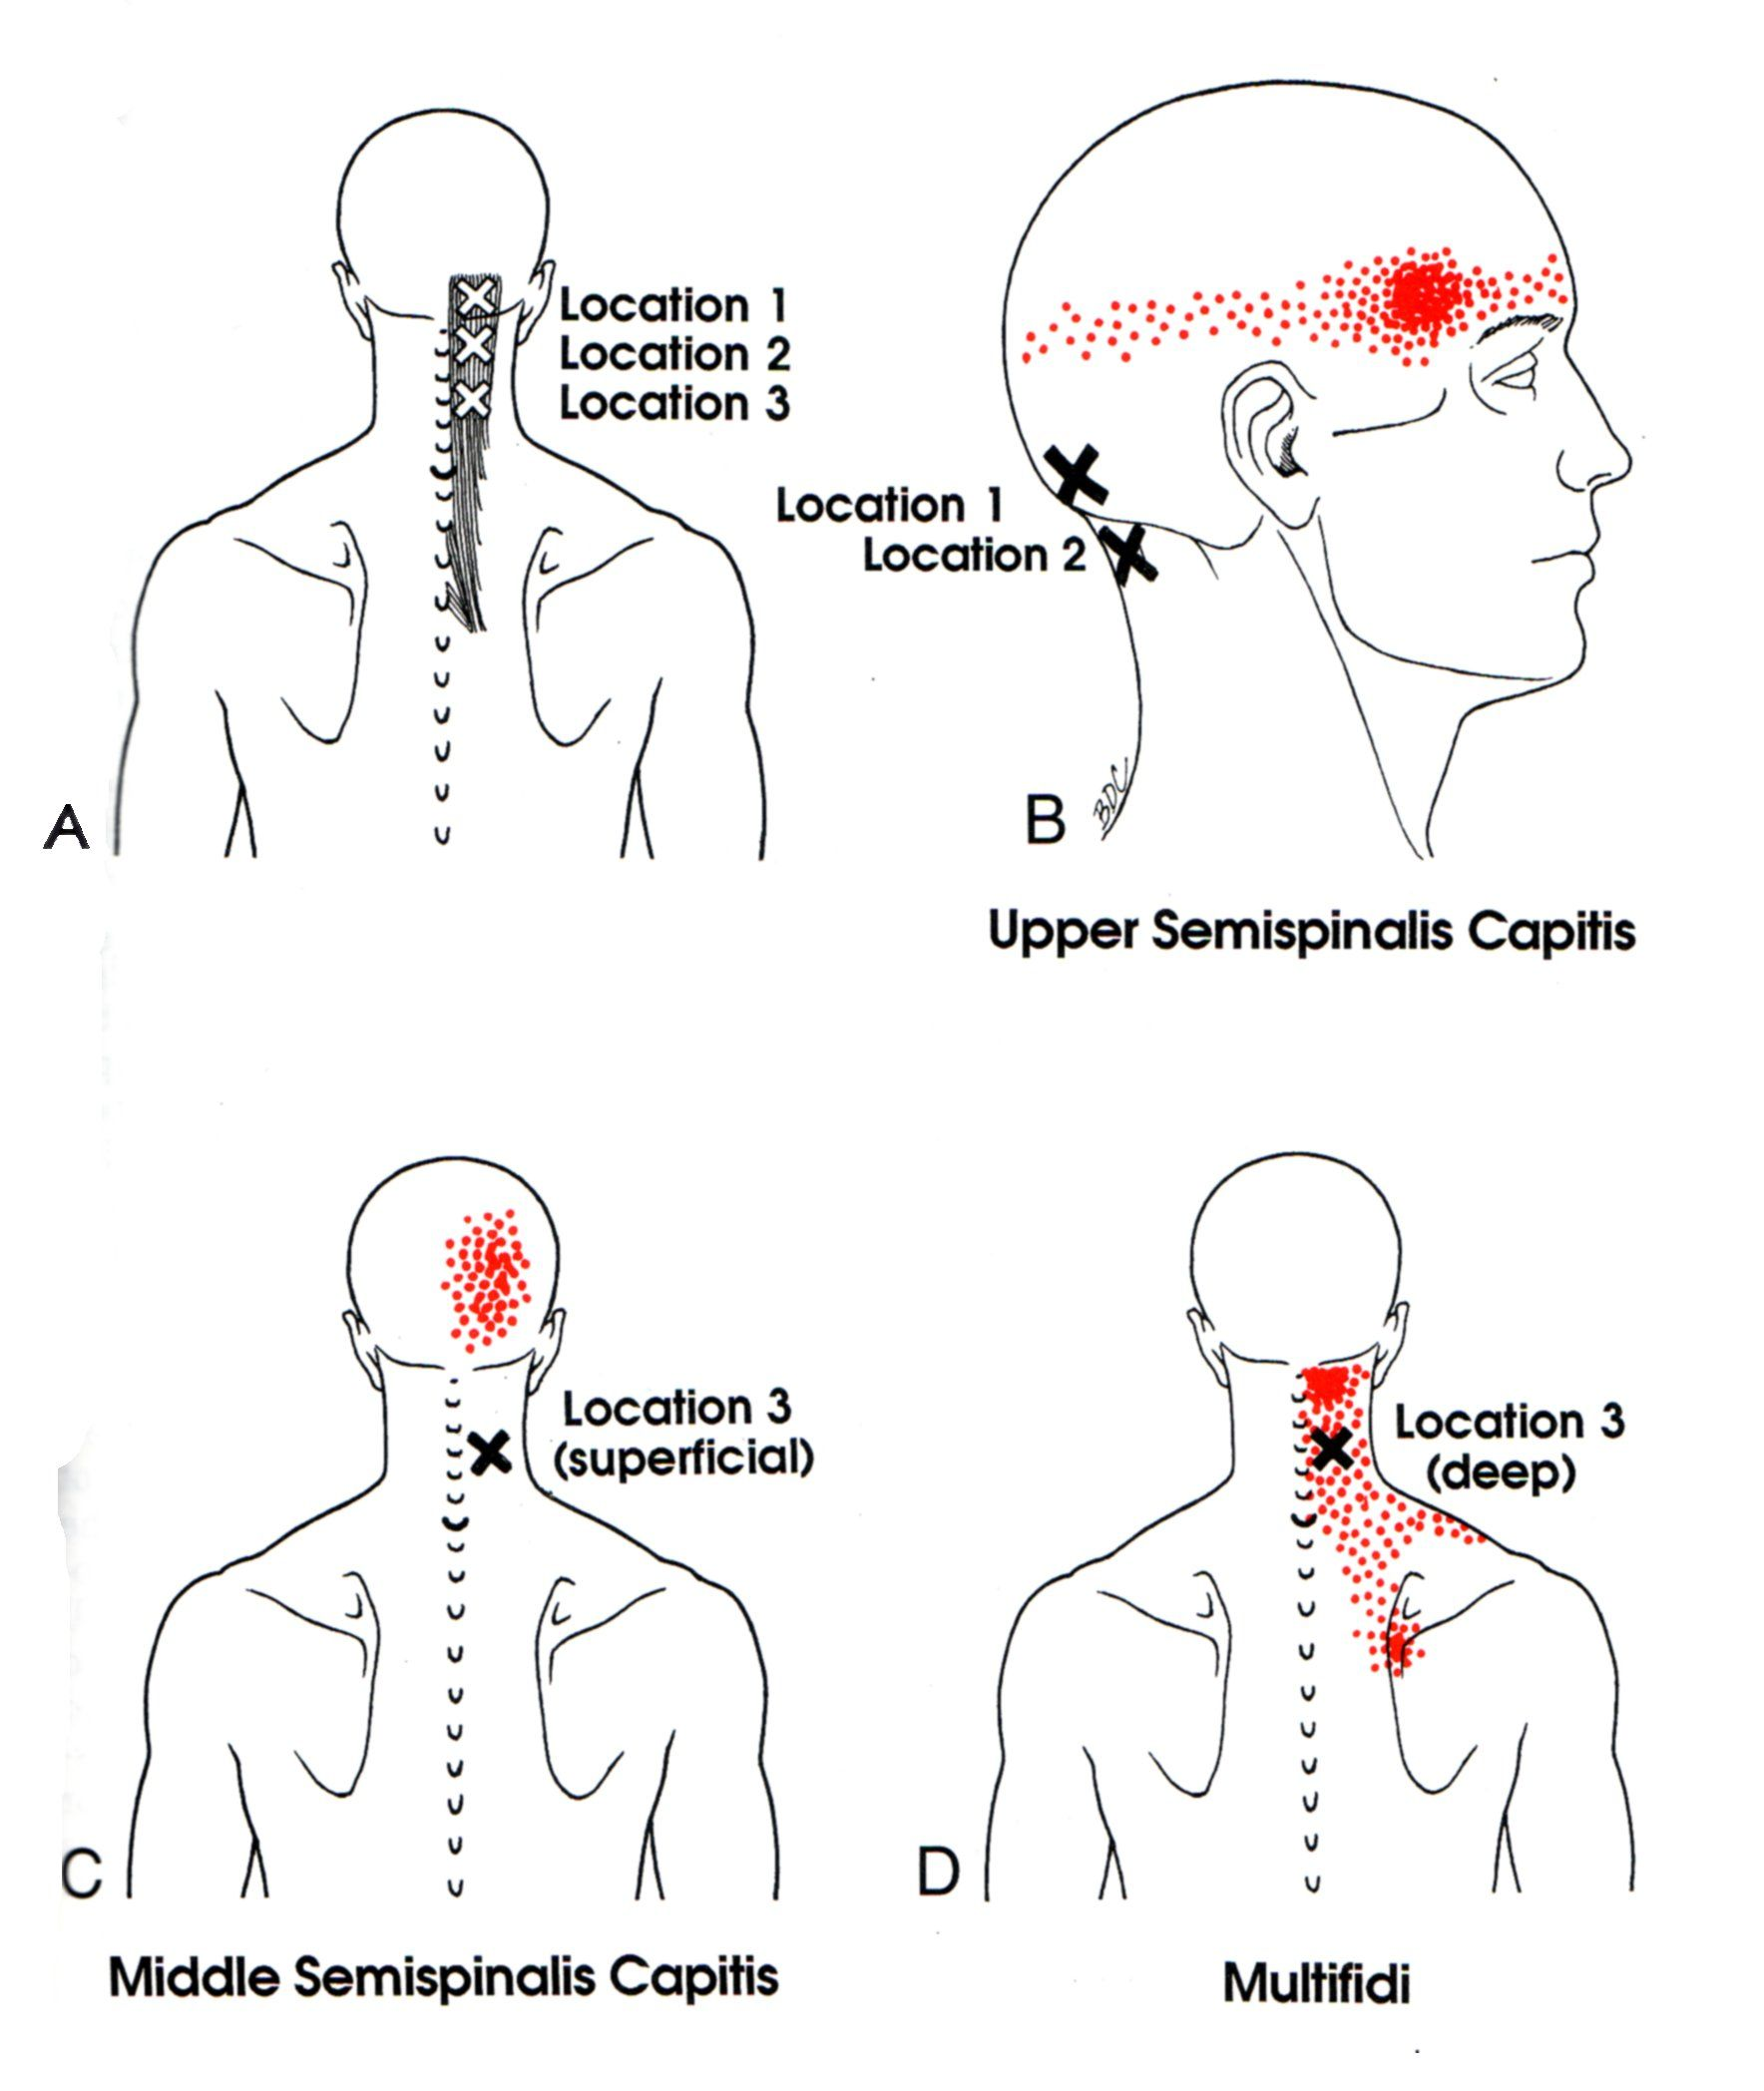 massage technique diagram electrolux double oven wiring semispinalis capitis the trigger point and referred pain